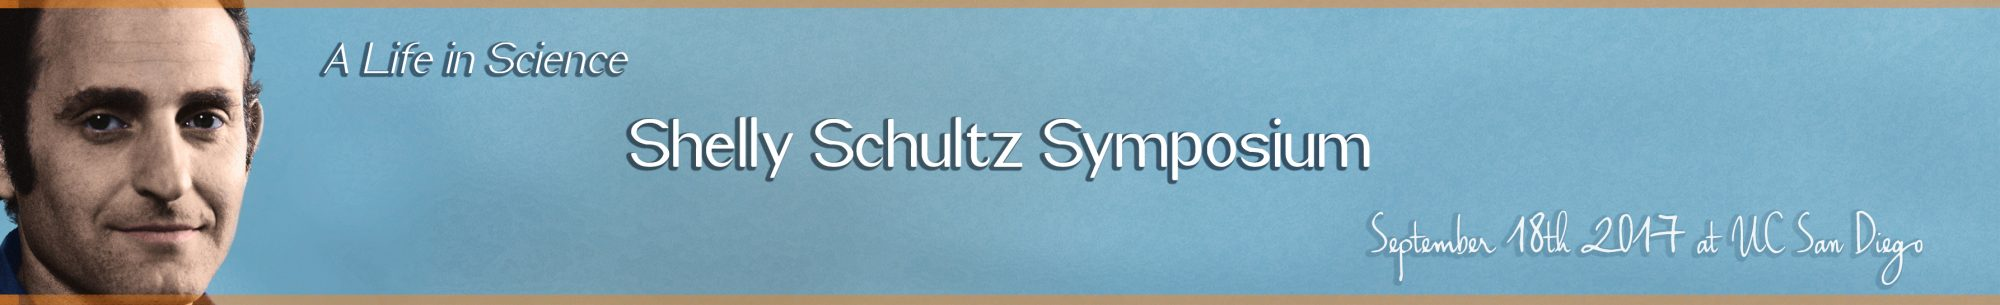 Shelly Schultz Symposium